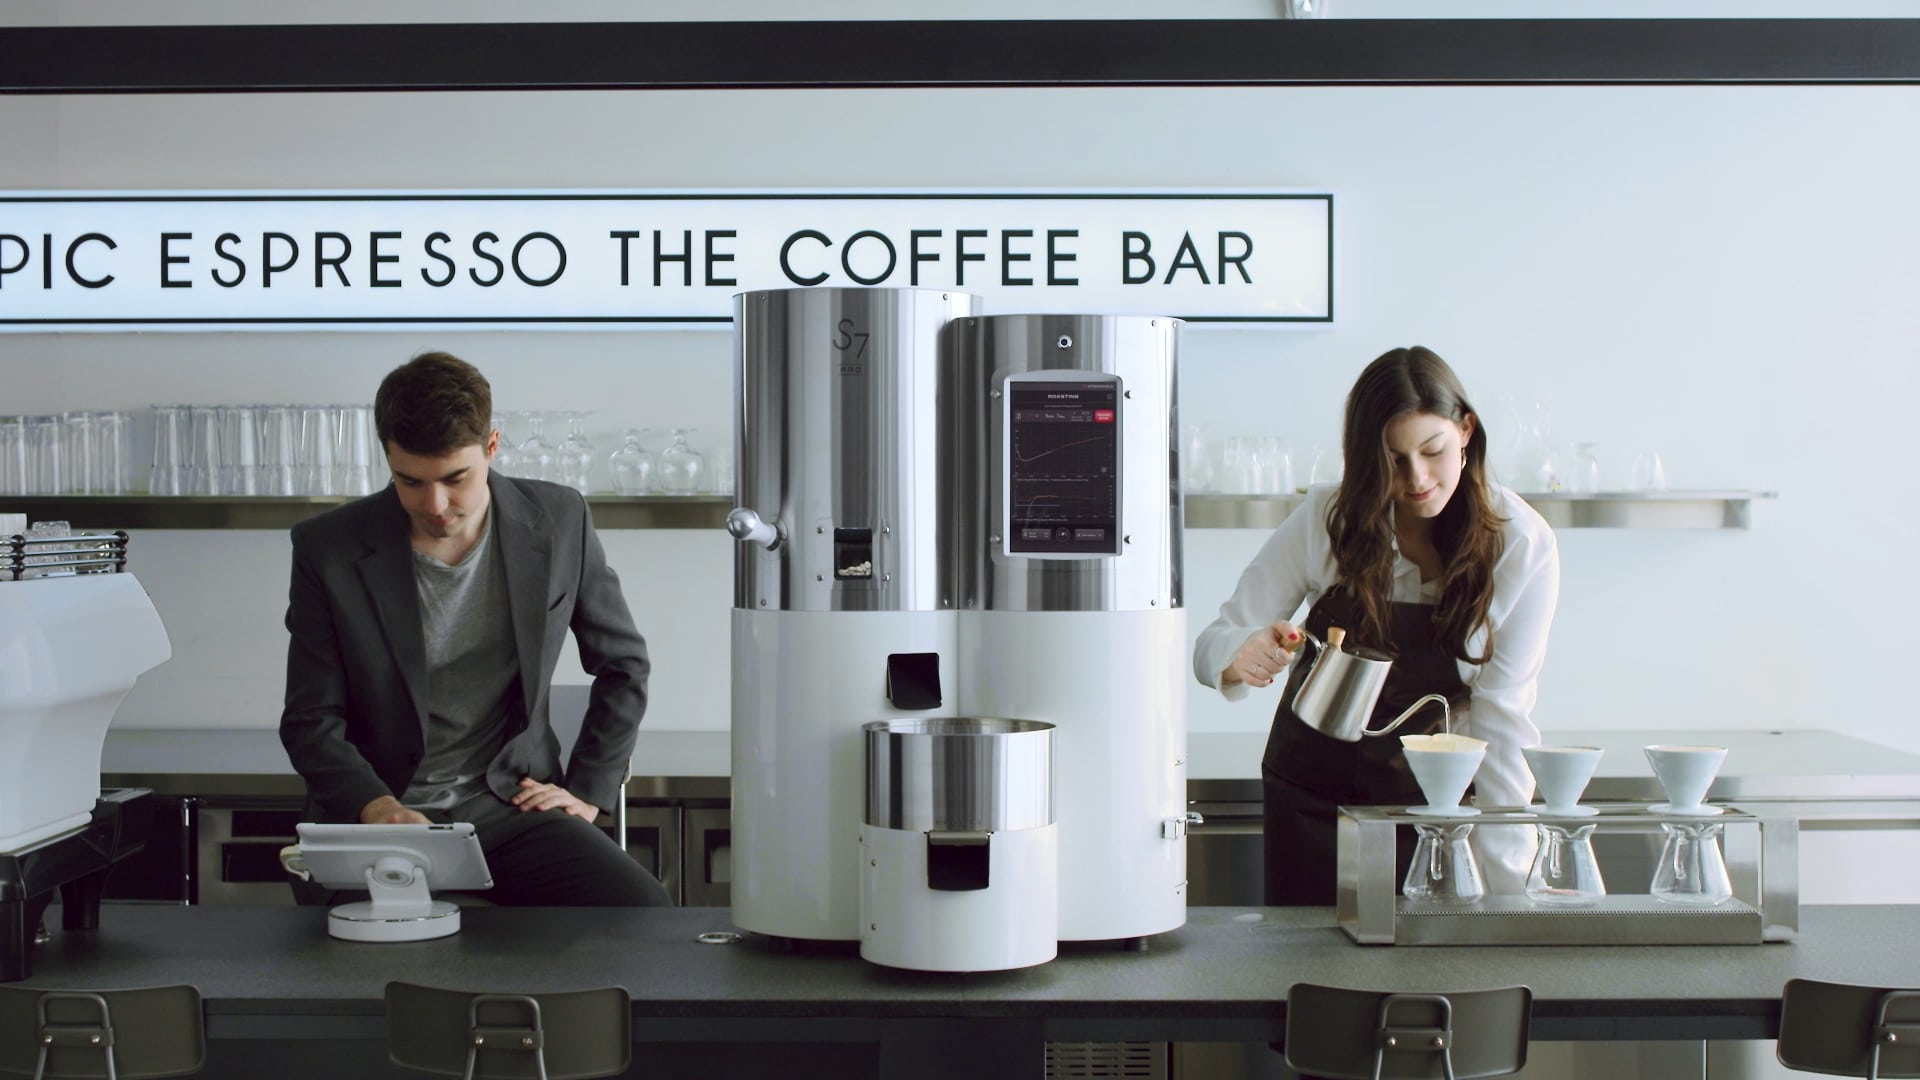 Sol Payton Lee S7 Pro Brand Campaign Film - Stronghold Smart Roasters to Introduce A Whole New Concept of Coffee Roasting